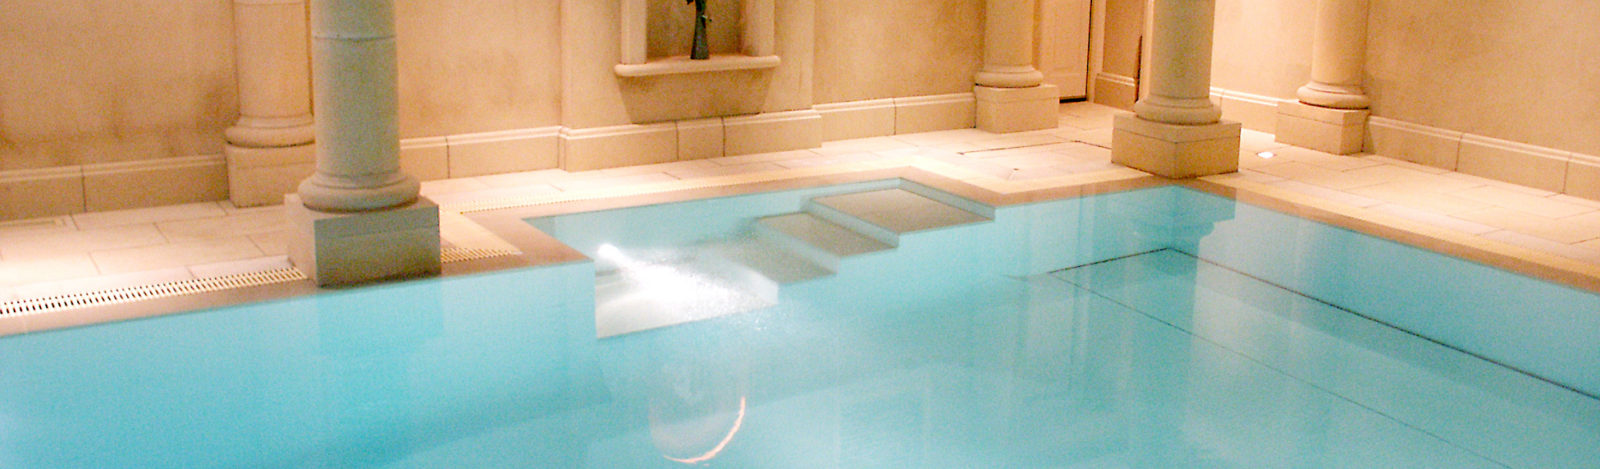 Recotherm Limited Specialists In Swimming Pool